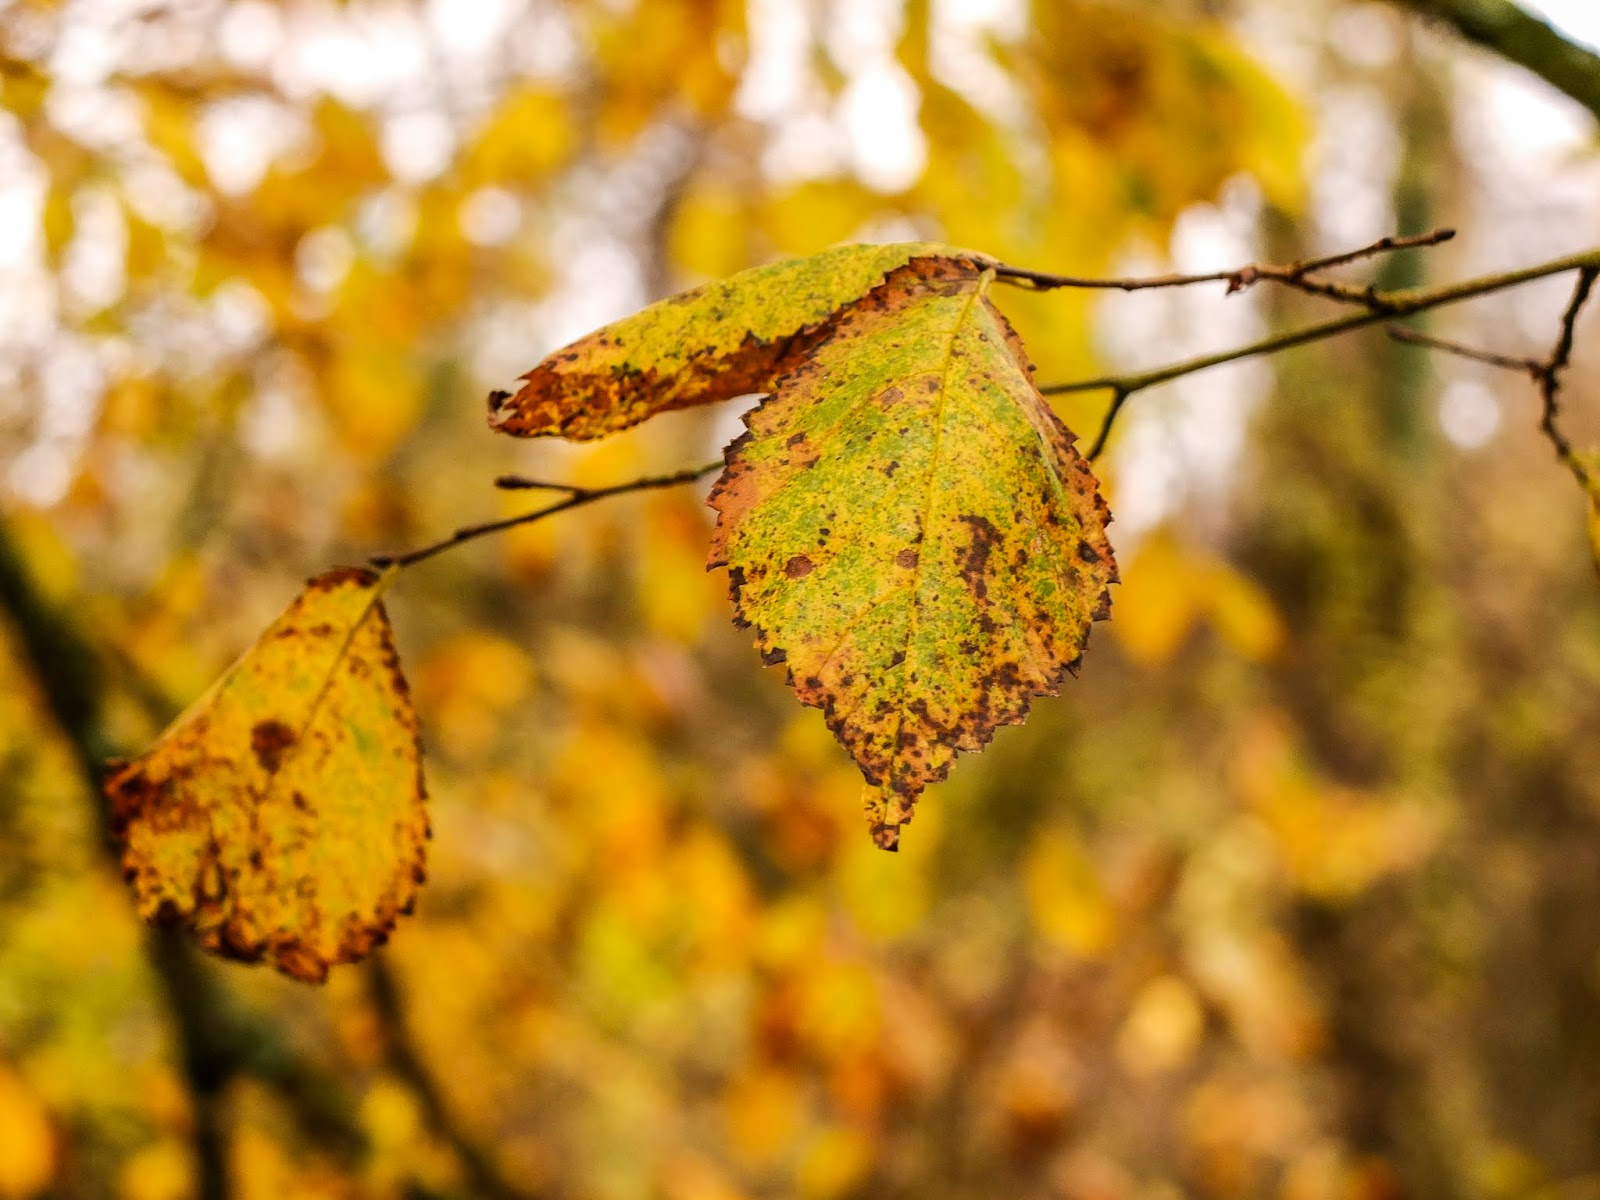 Yellowing and browning Autumn leaves on a tree branch.